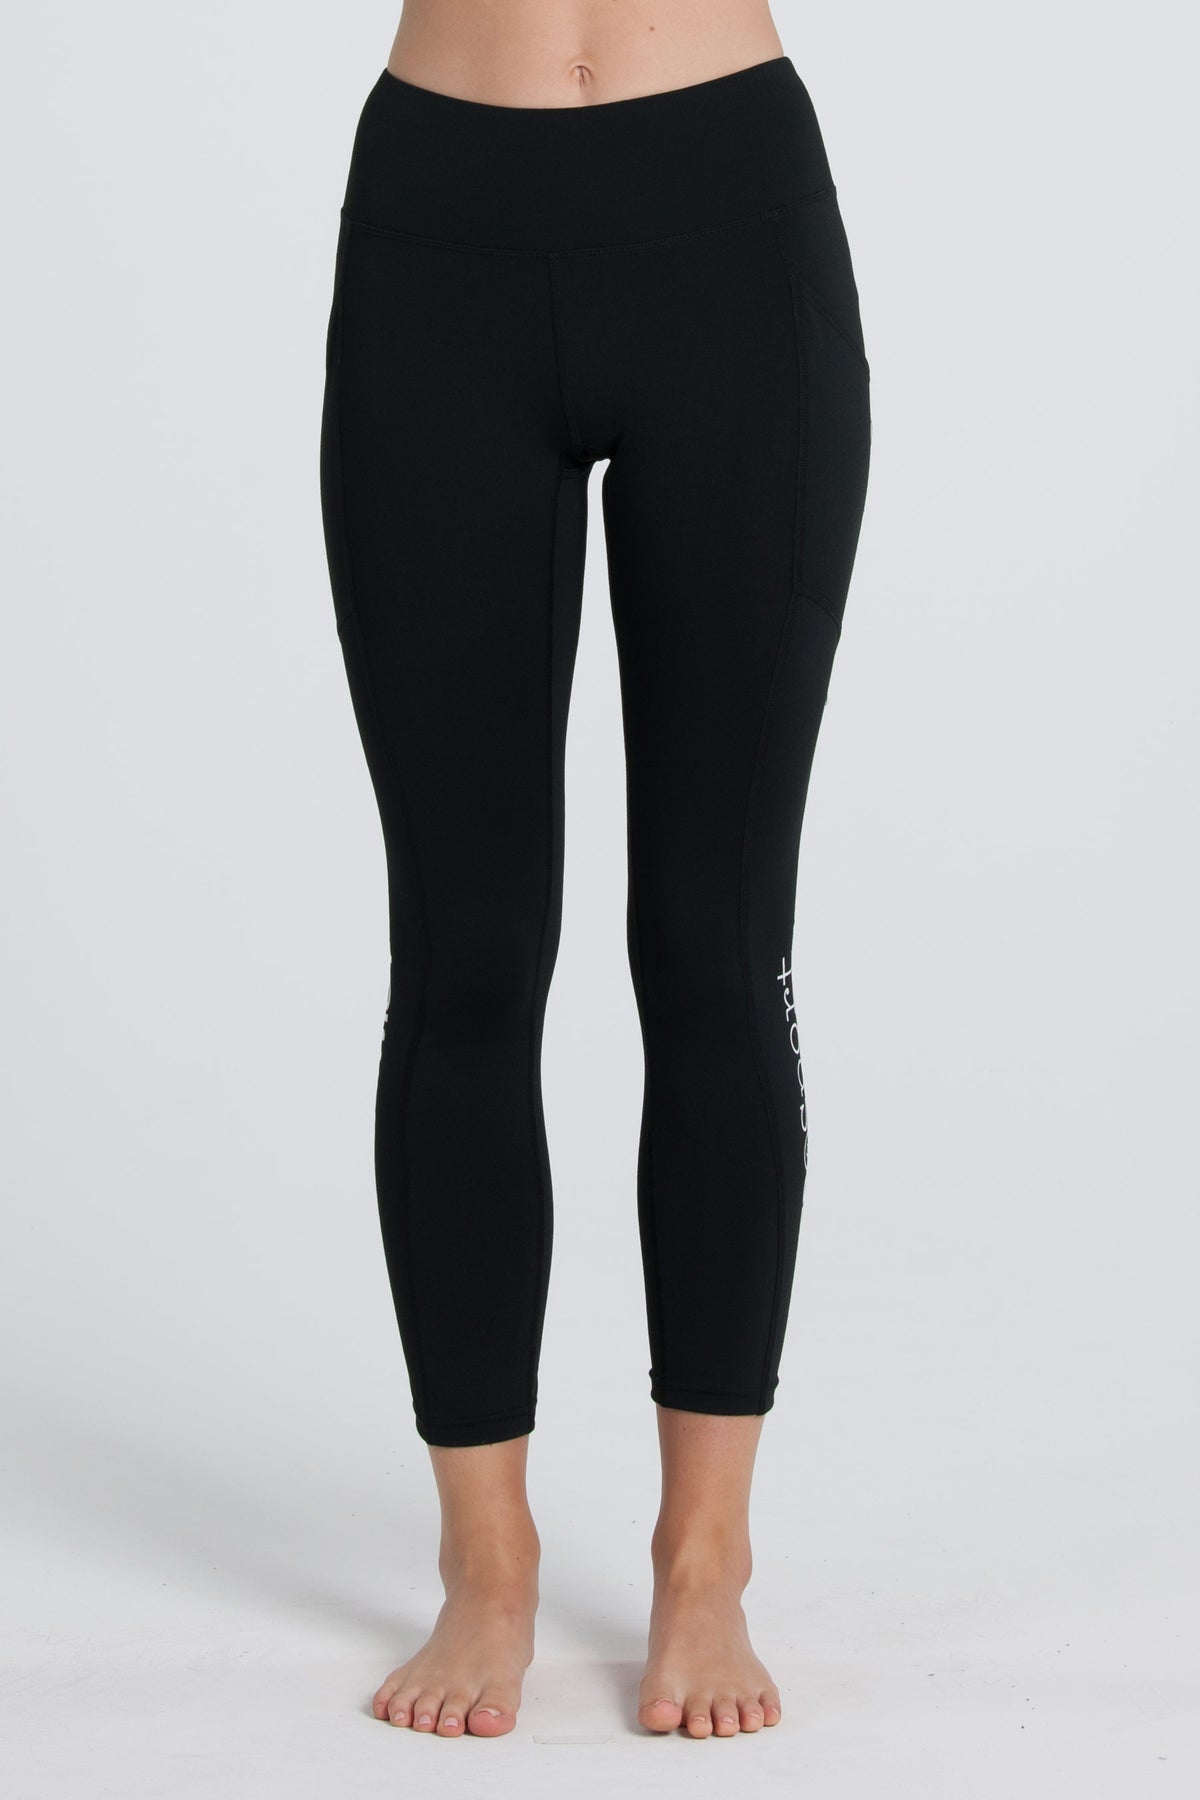 Side Pocket Tights - Black